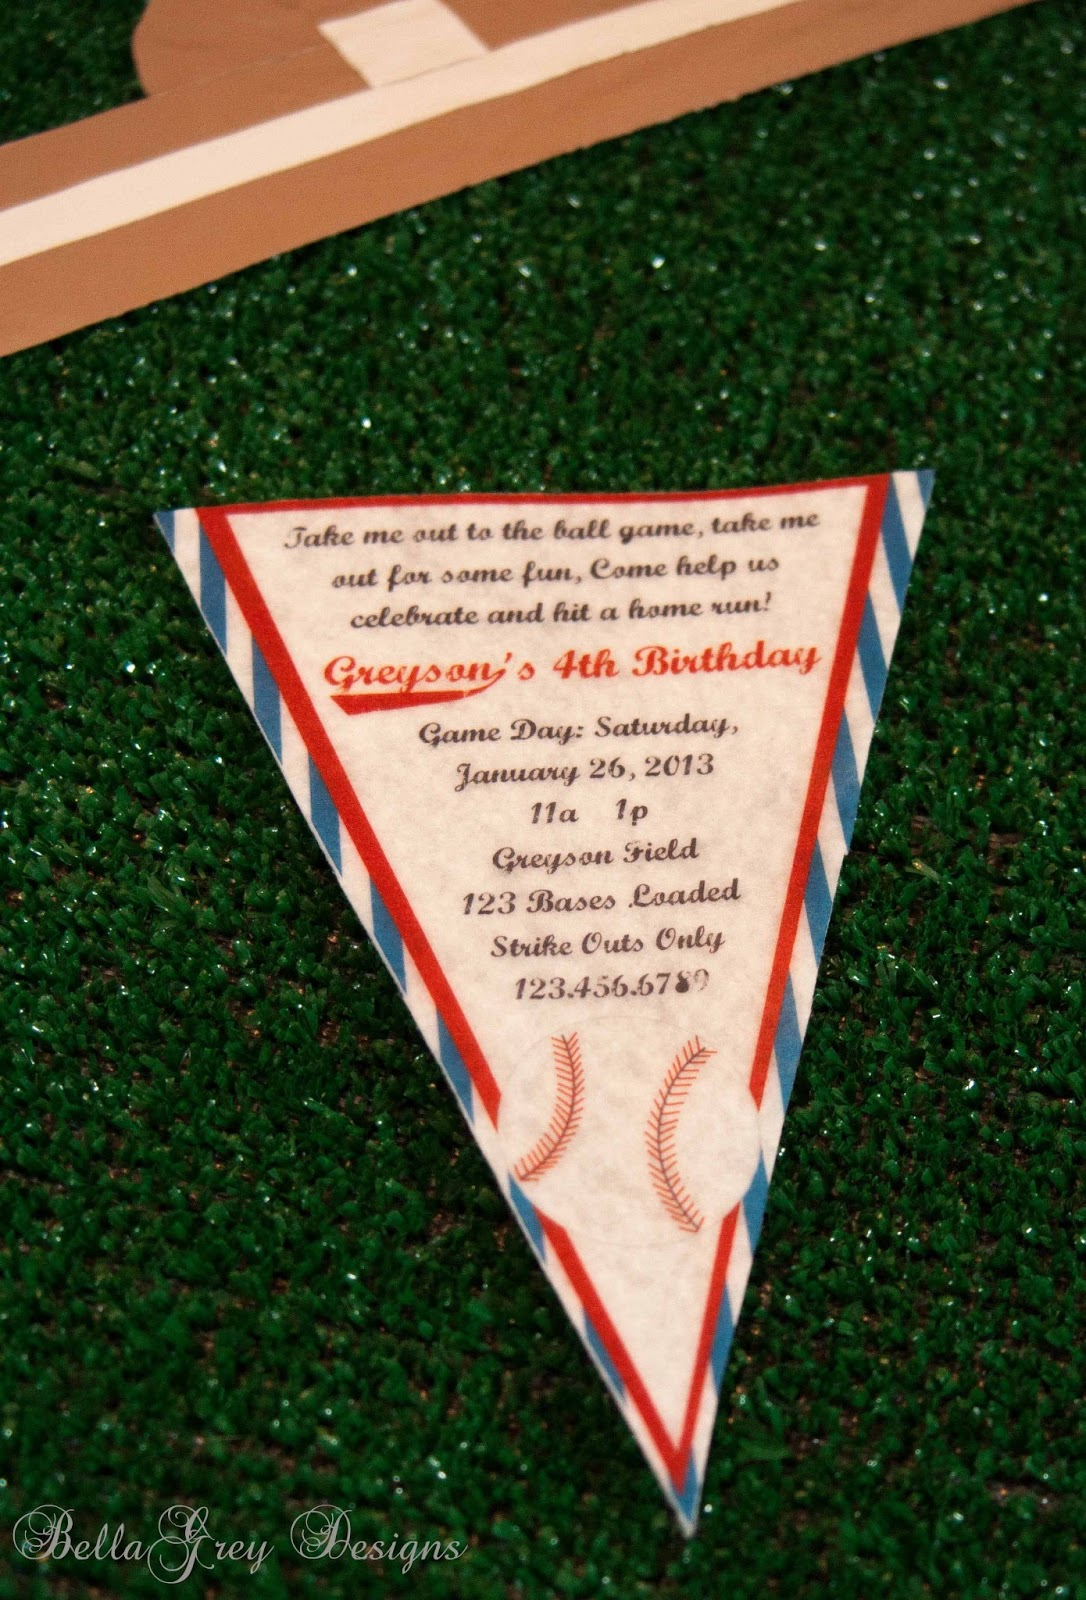 BellaGrey Designs New Vintage Baseball Collection Real Party